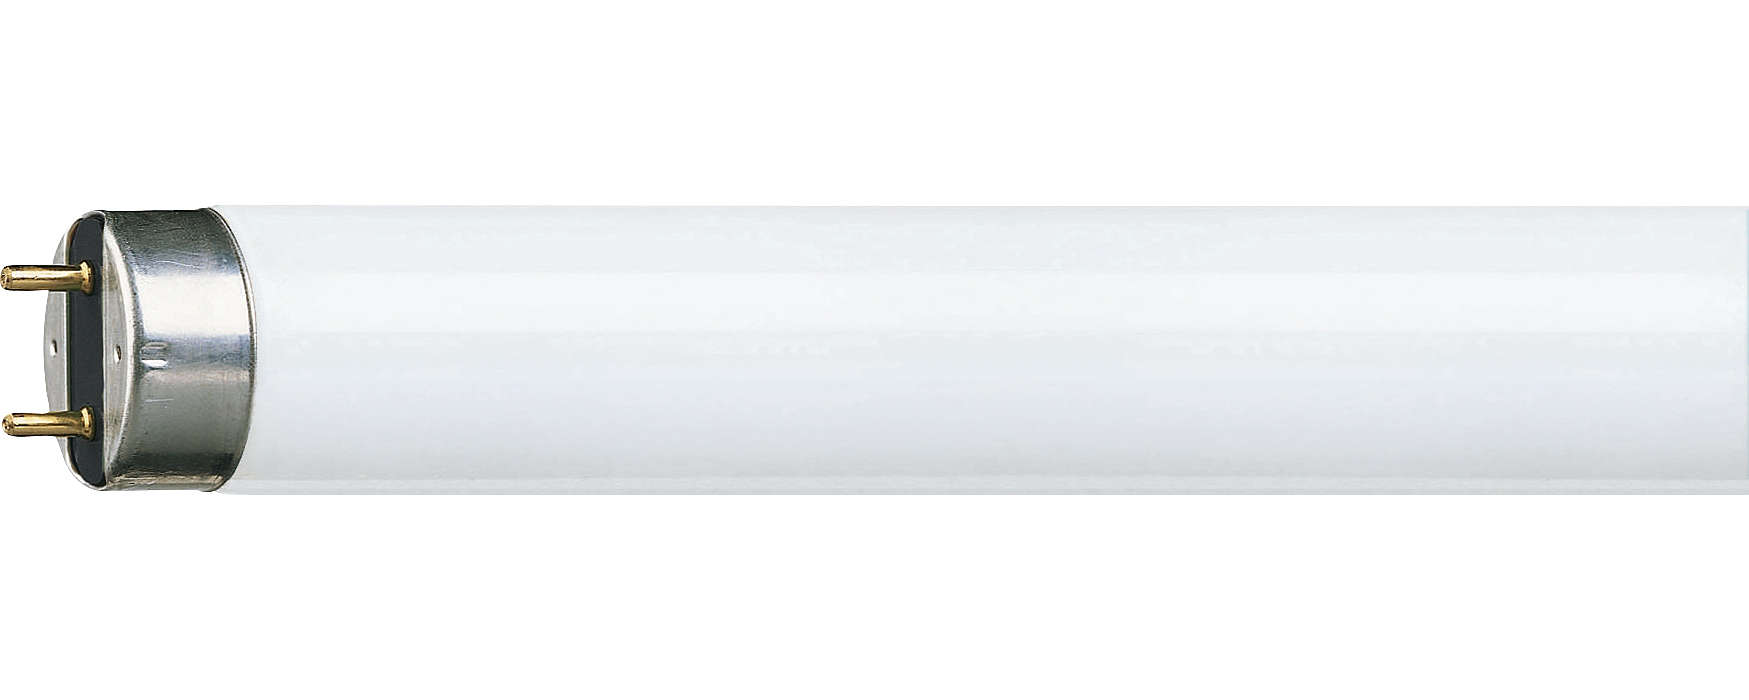 Efficient fluorescent lighting with improved color rendering